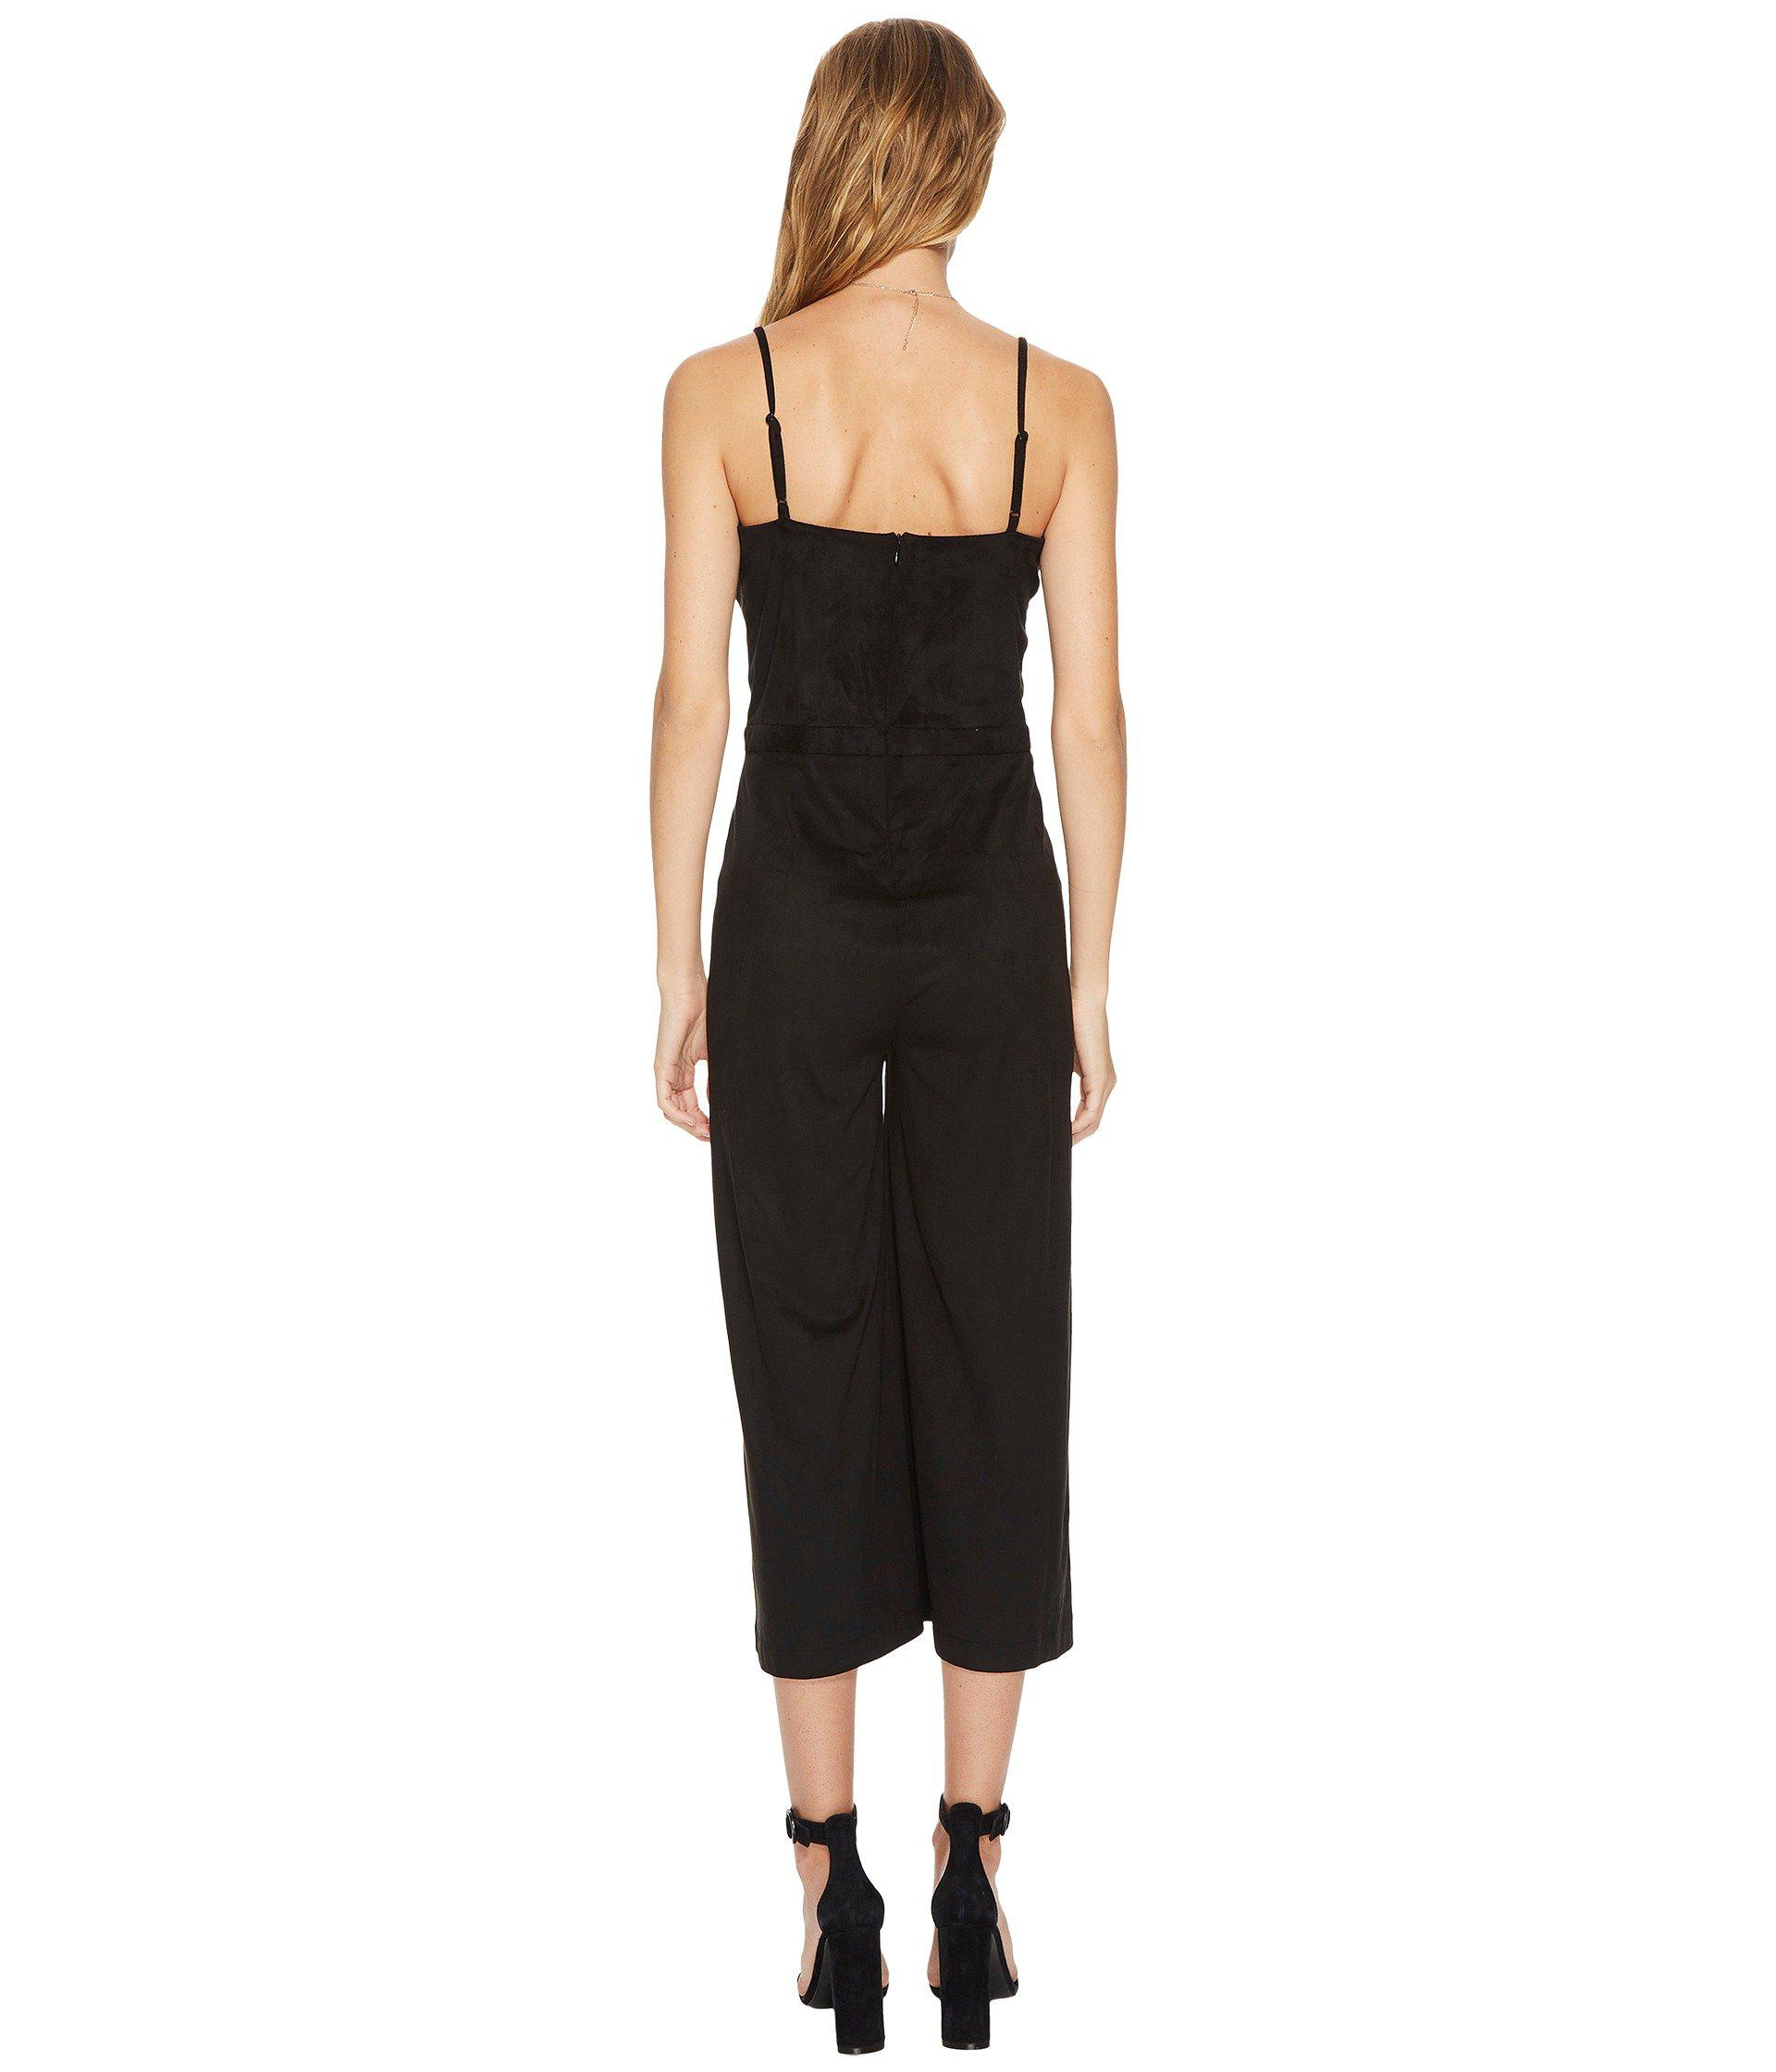 d6cd043b3a0 Jack BB Dakota - Black Darcy Faux Suede Midi Jumpsuit - Lyst. View  fullscreen